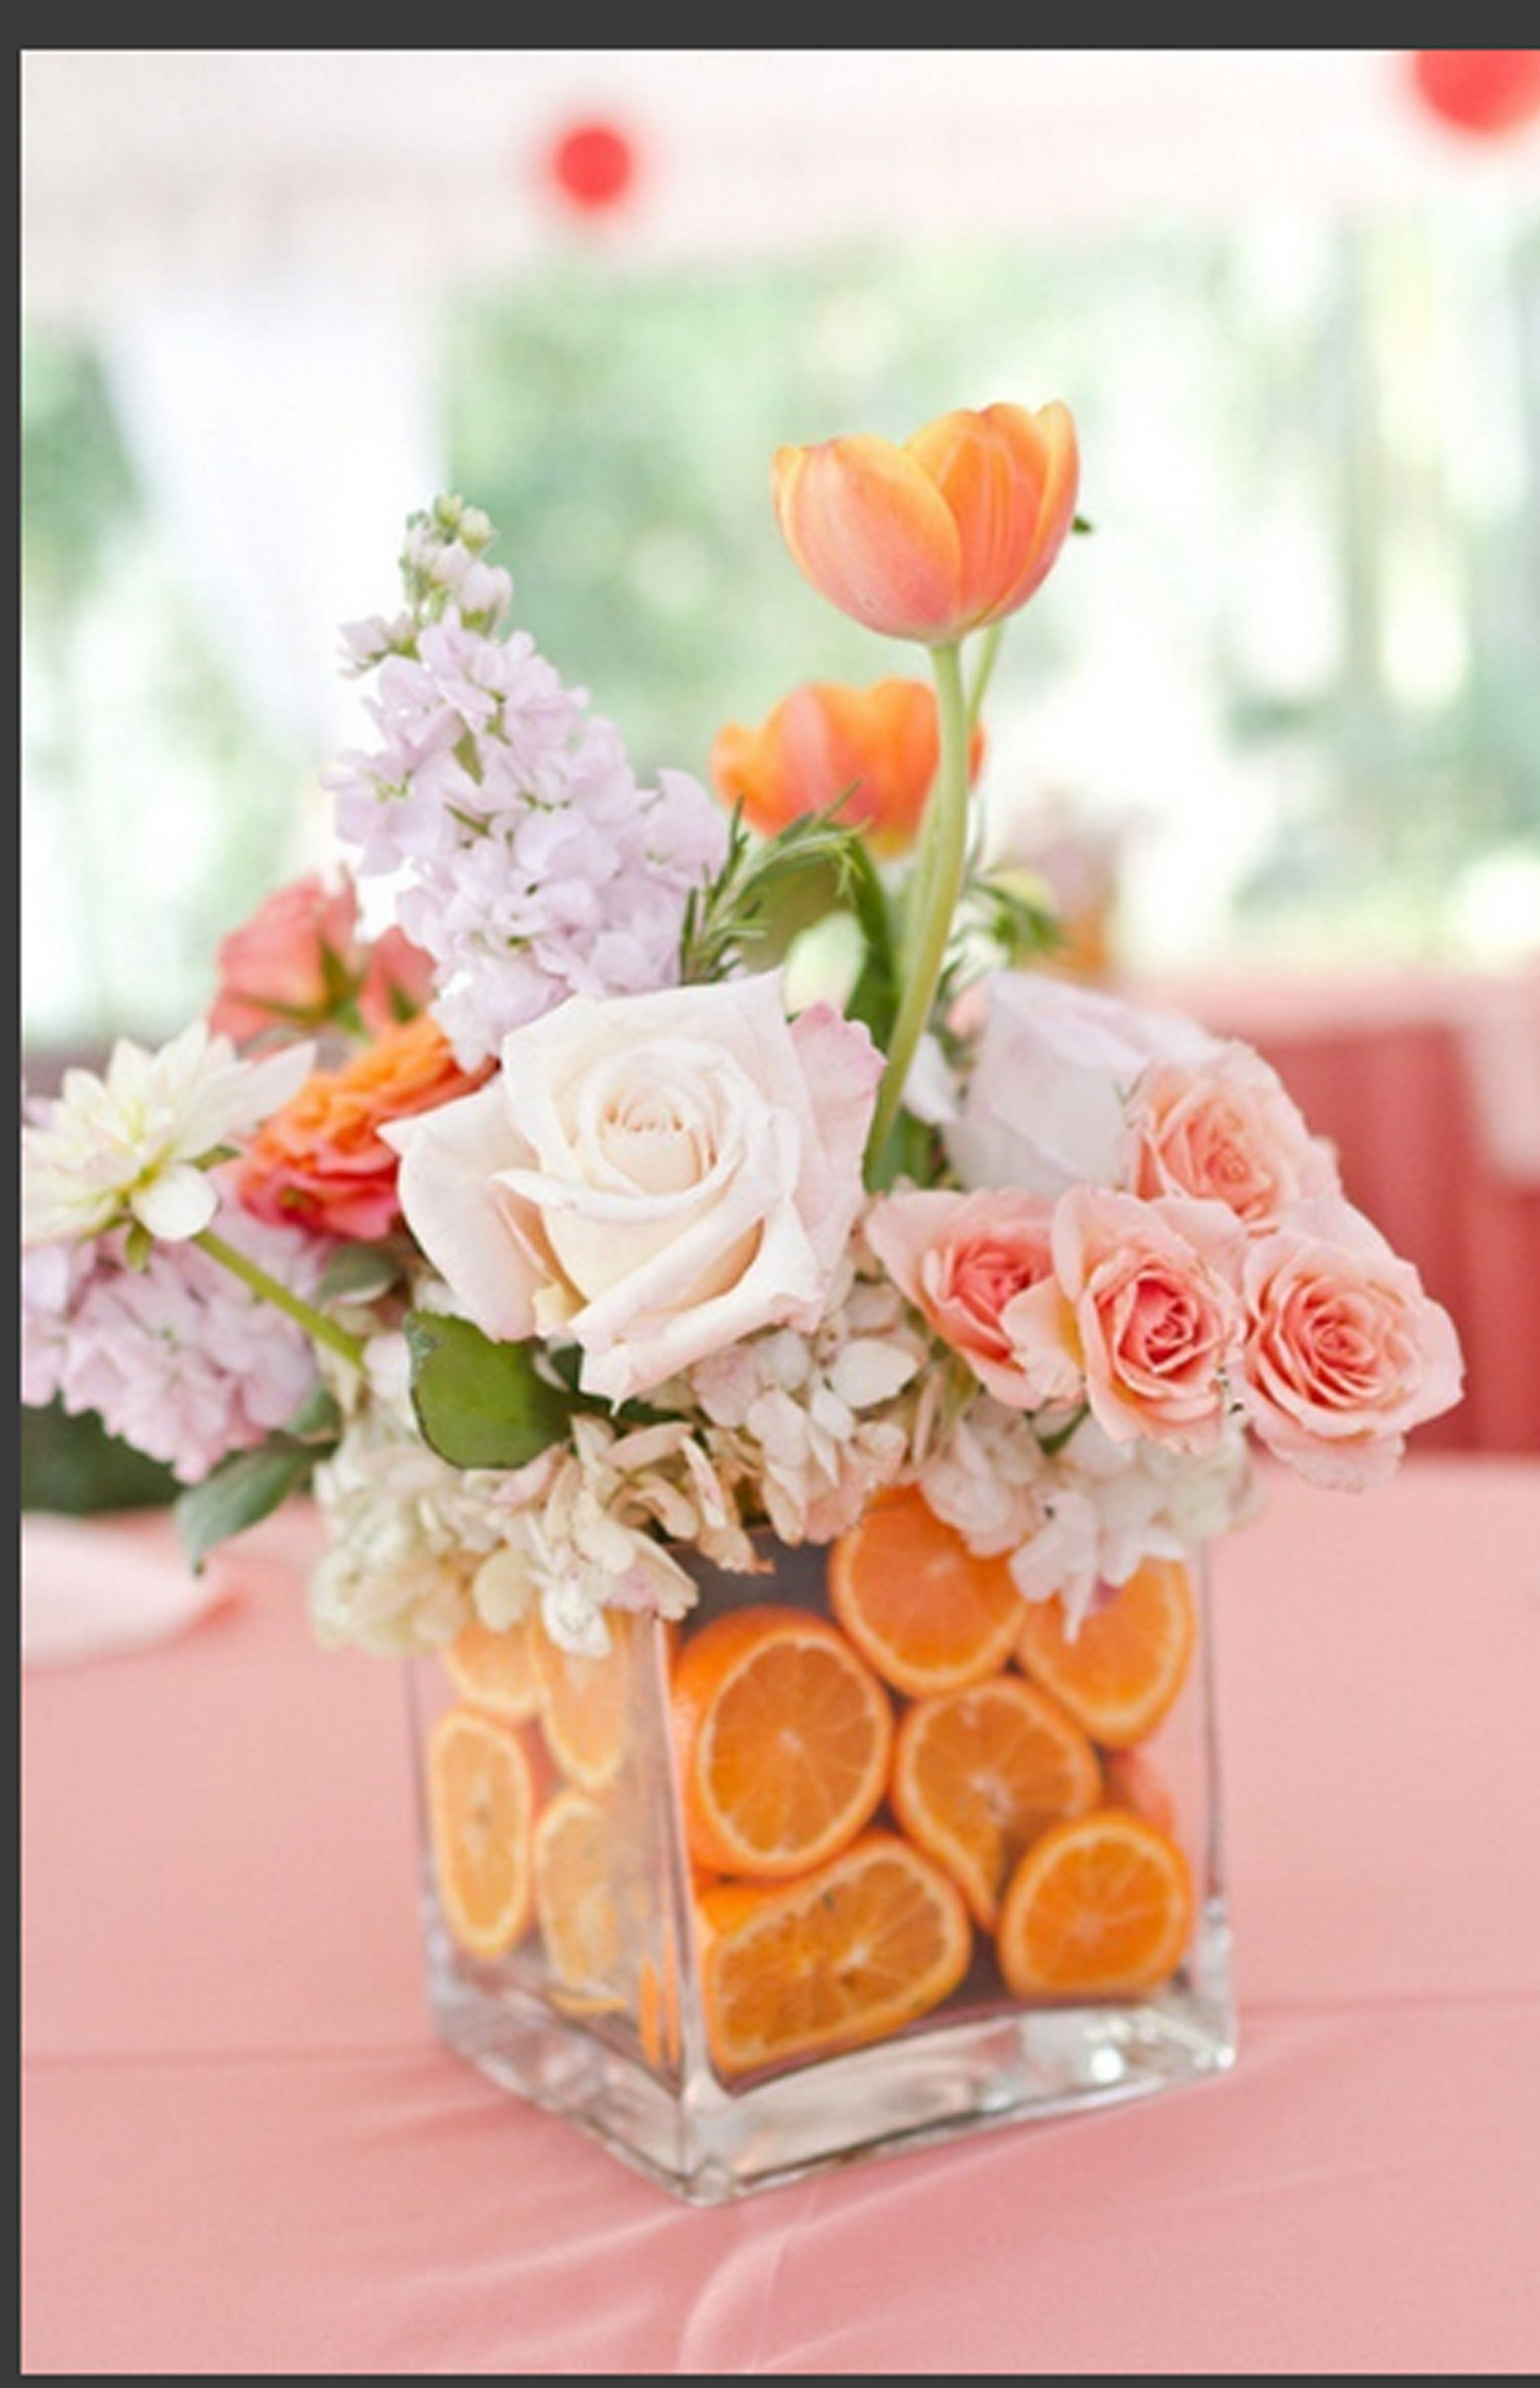 Fruit Vase Centerpiece Of orange Wedding Blommor Pinterest Flower Arrangements Flowers Regarding since the Traditional Wedding Anniversary Gift is Fruit and Flowers Wouldnt This Be Great or Maybe A Fruit Of the Month for Him and Flower Of the Month